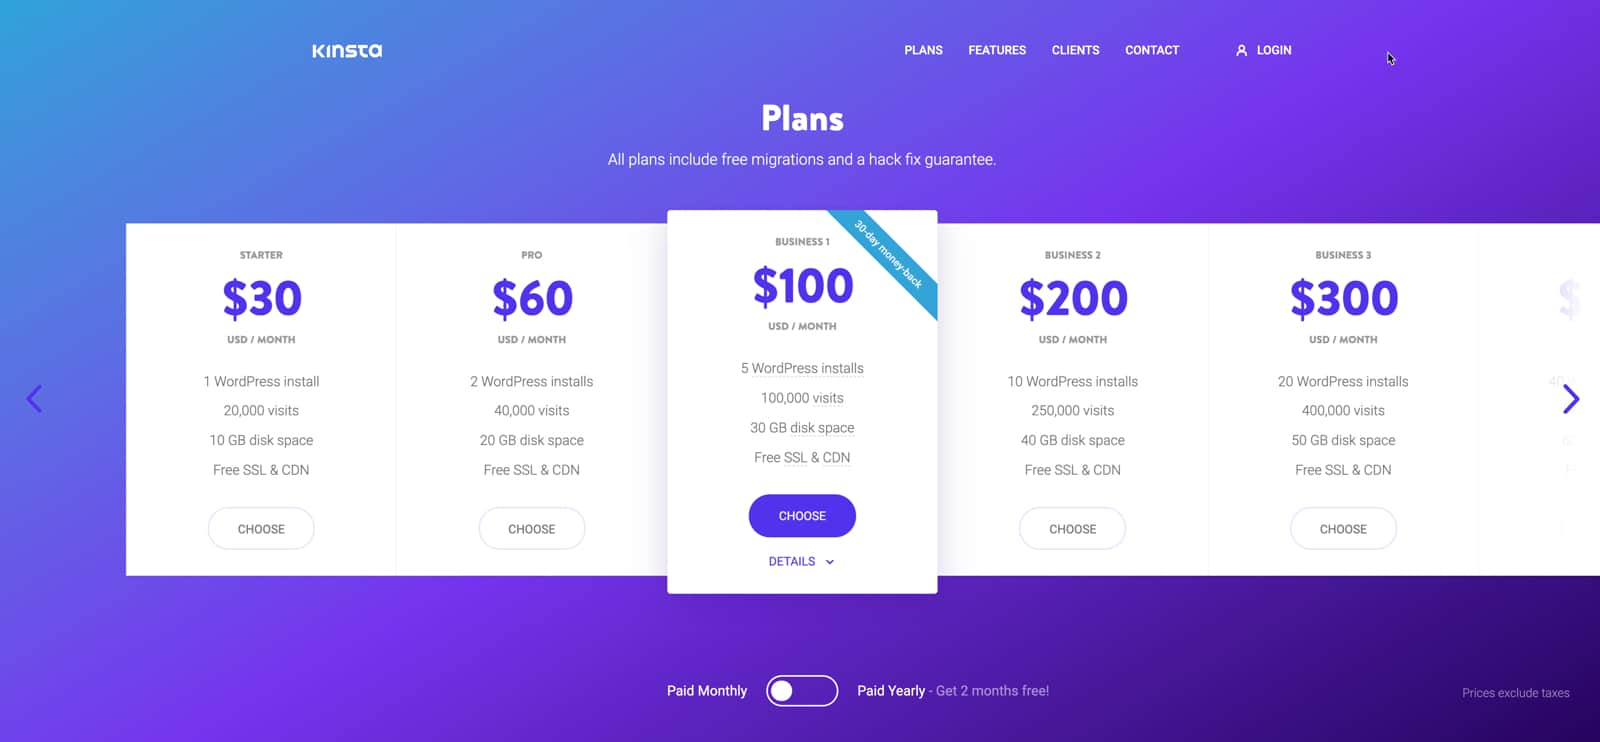 Kinsta offers a variety of plans to fit your needs.